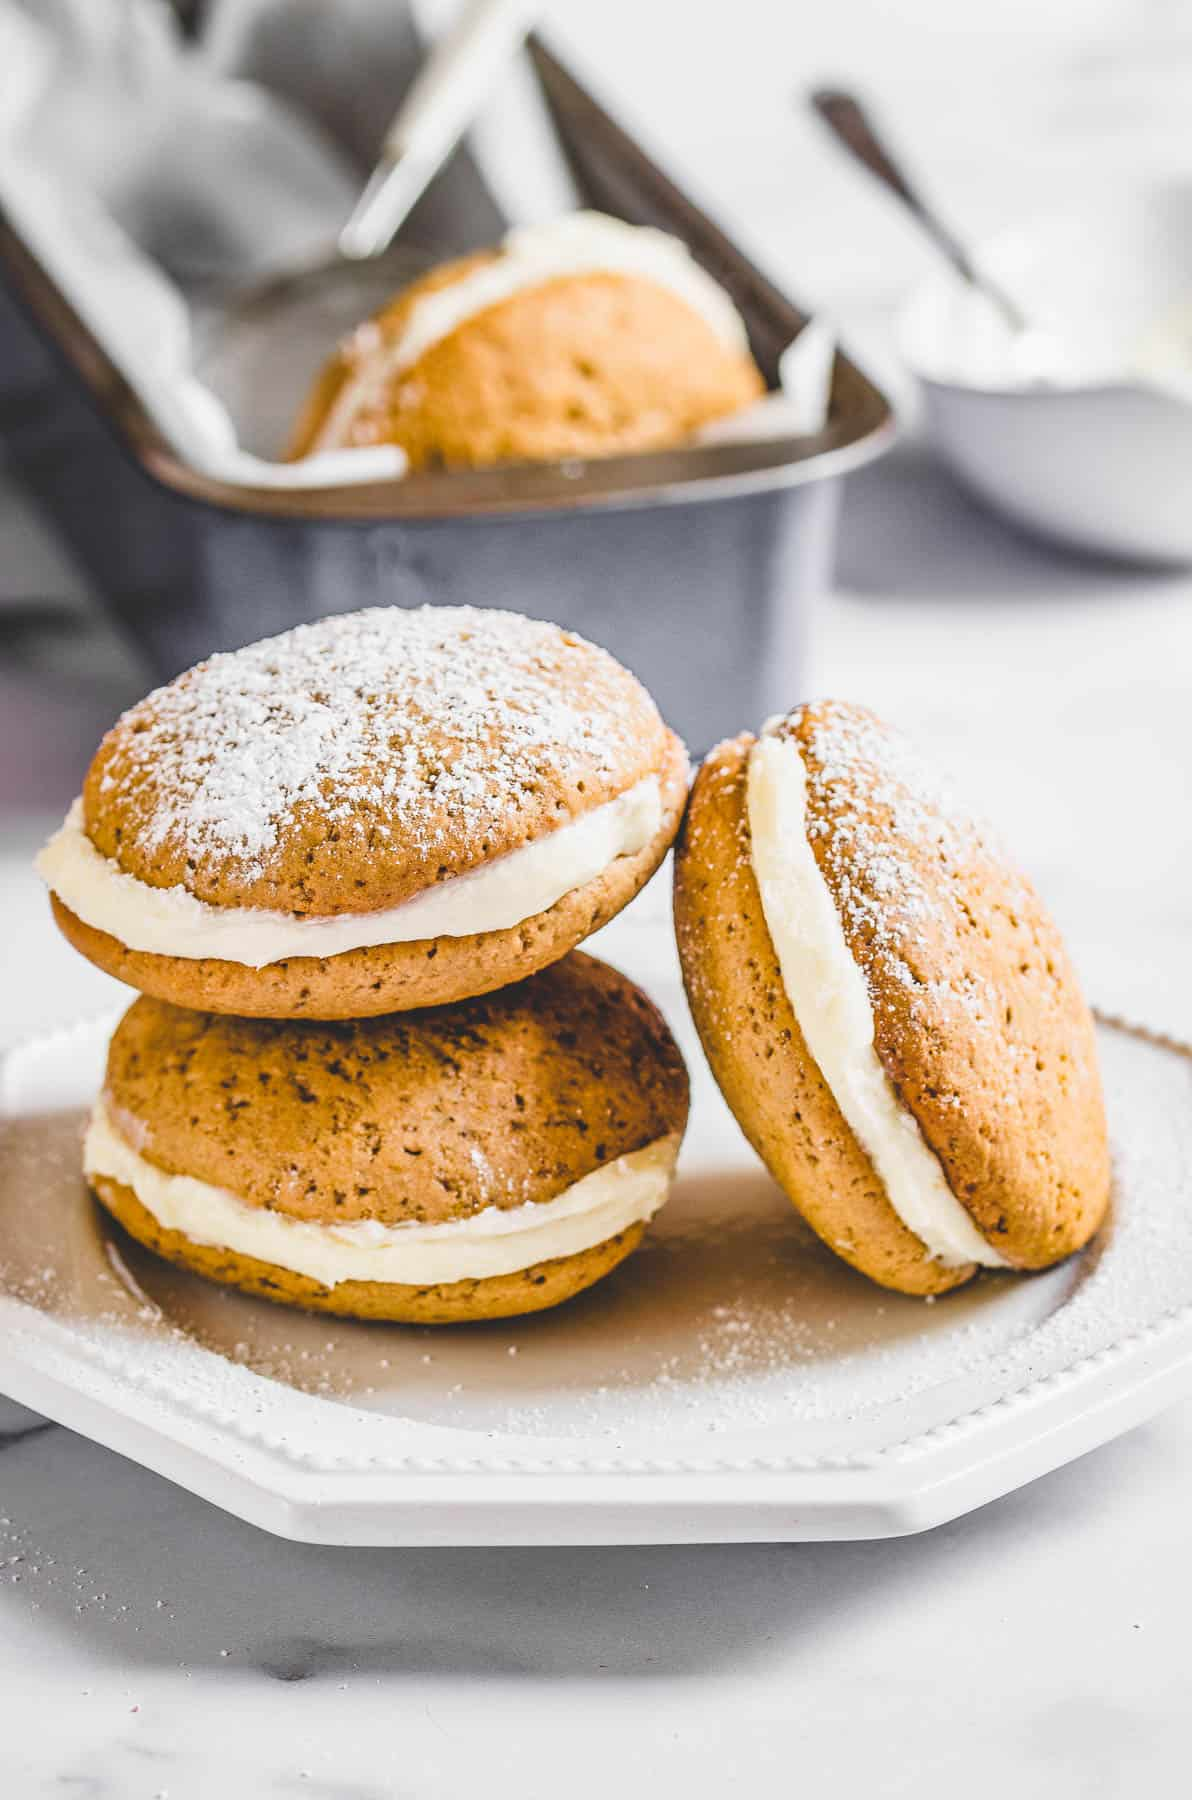 Three whoopie pies on a plate.